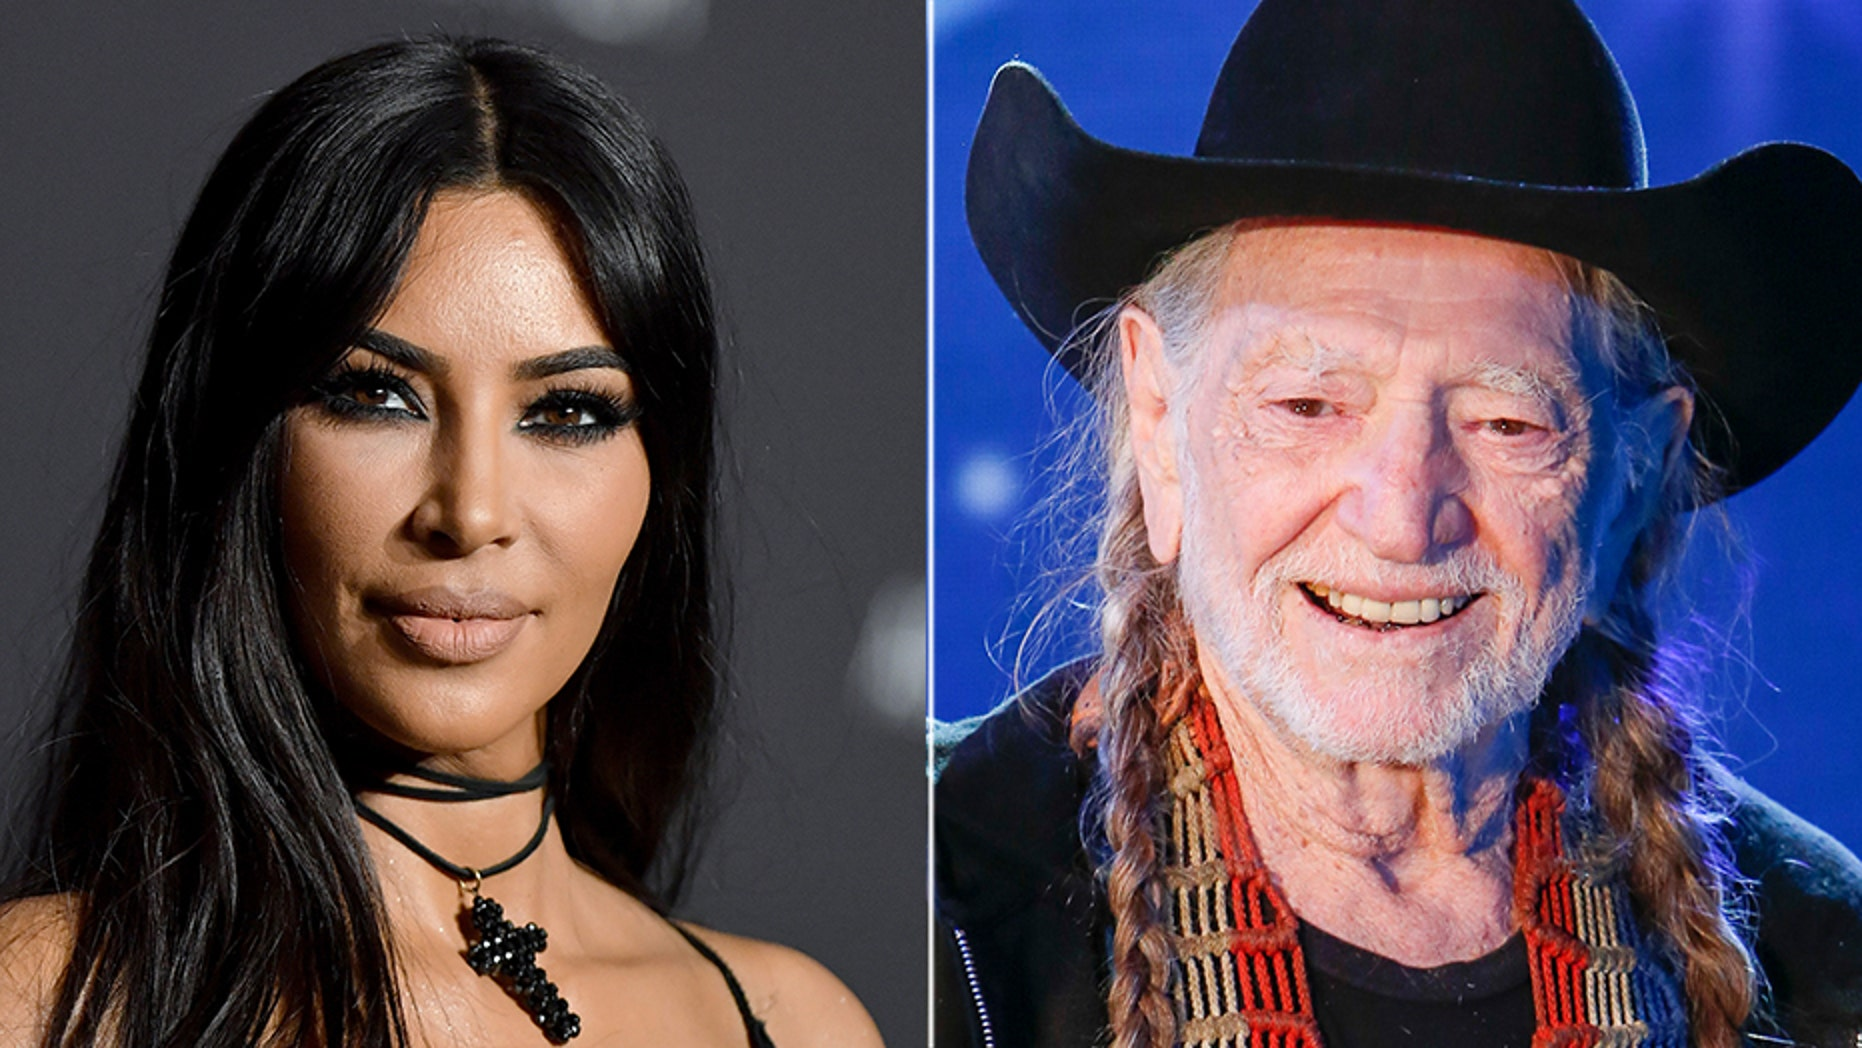 Kim Kardashian and Willie Nelson headed to the polls on Tuesday to cast their votes for the midterm elections.